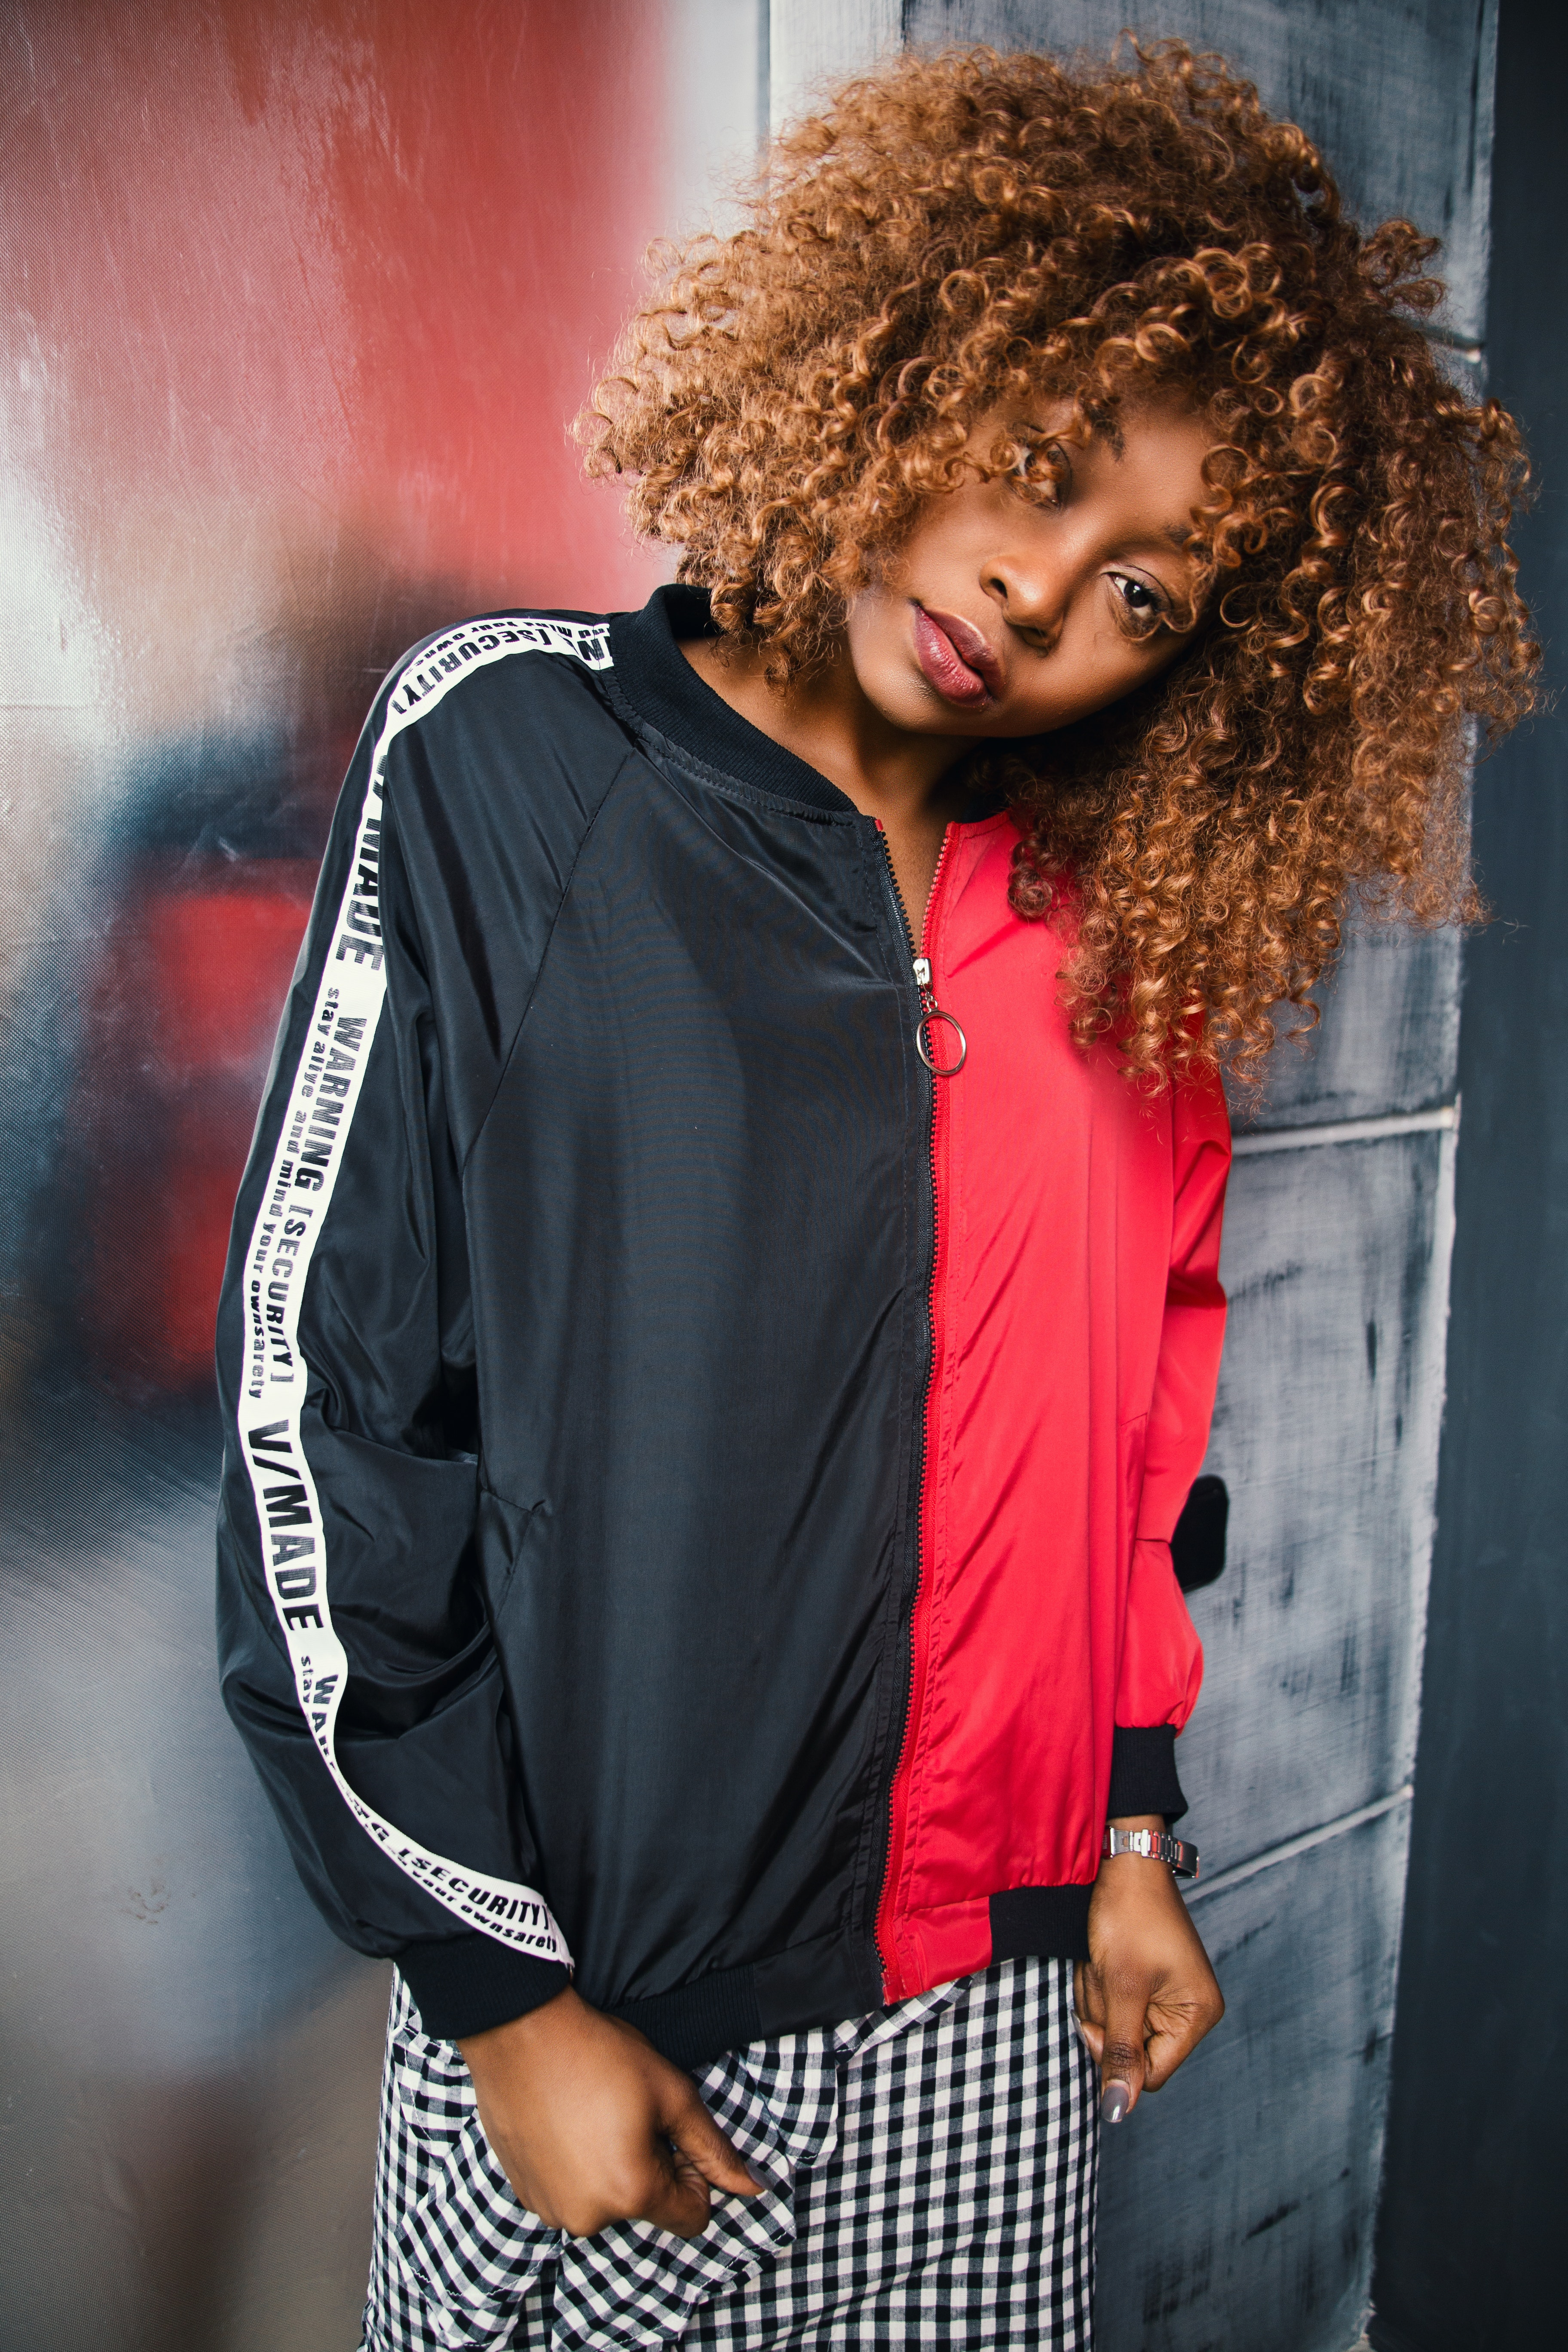 Woman Wearing Black and Red Zip-up Jacket · Free Stock Photo